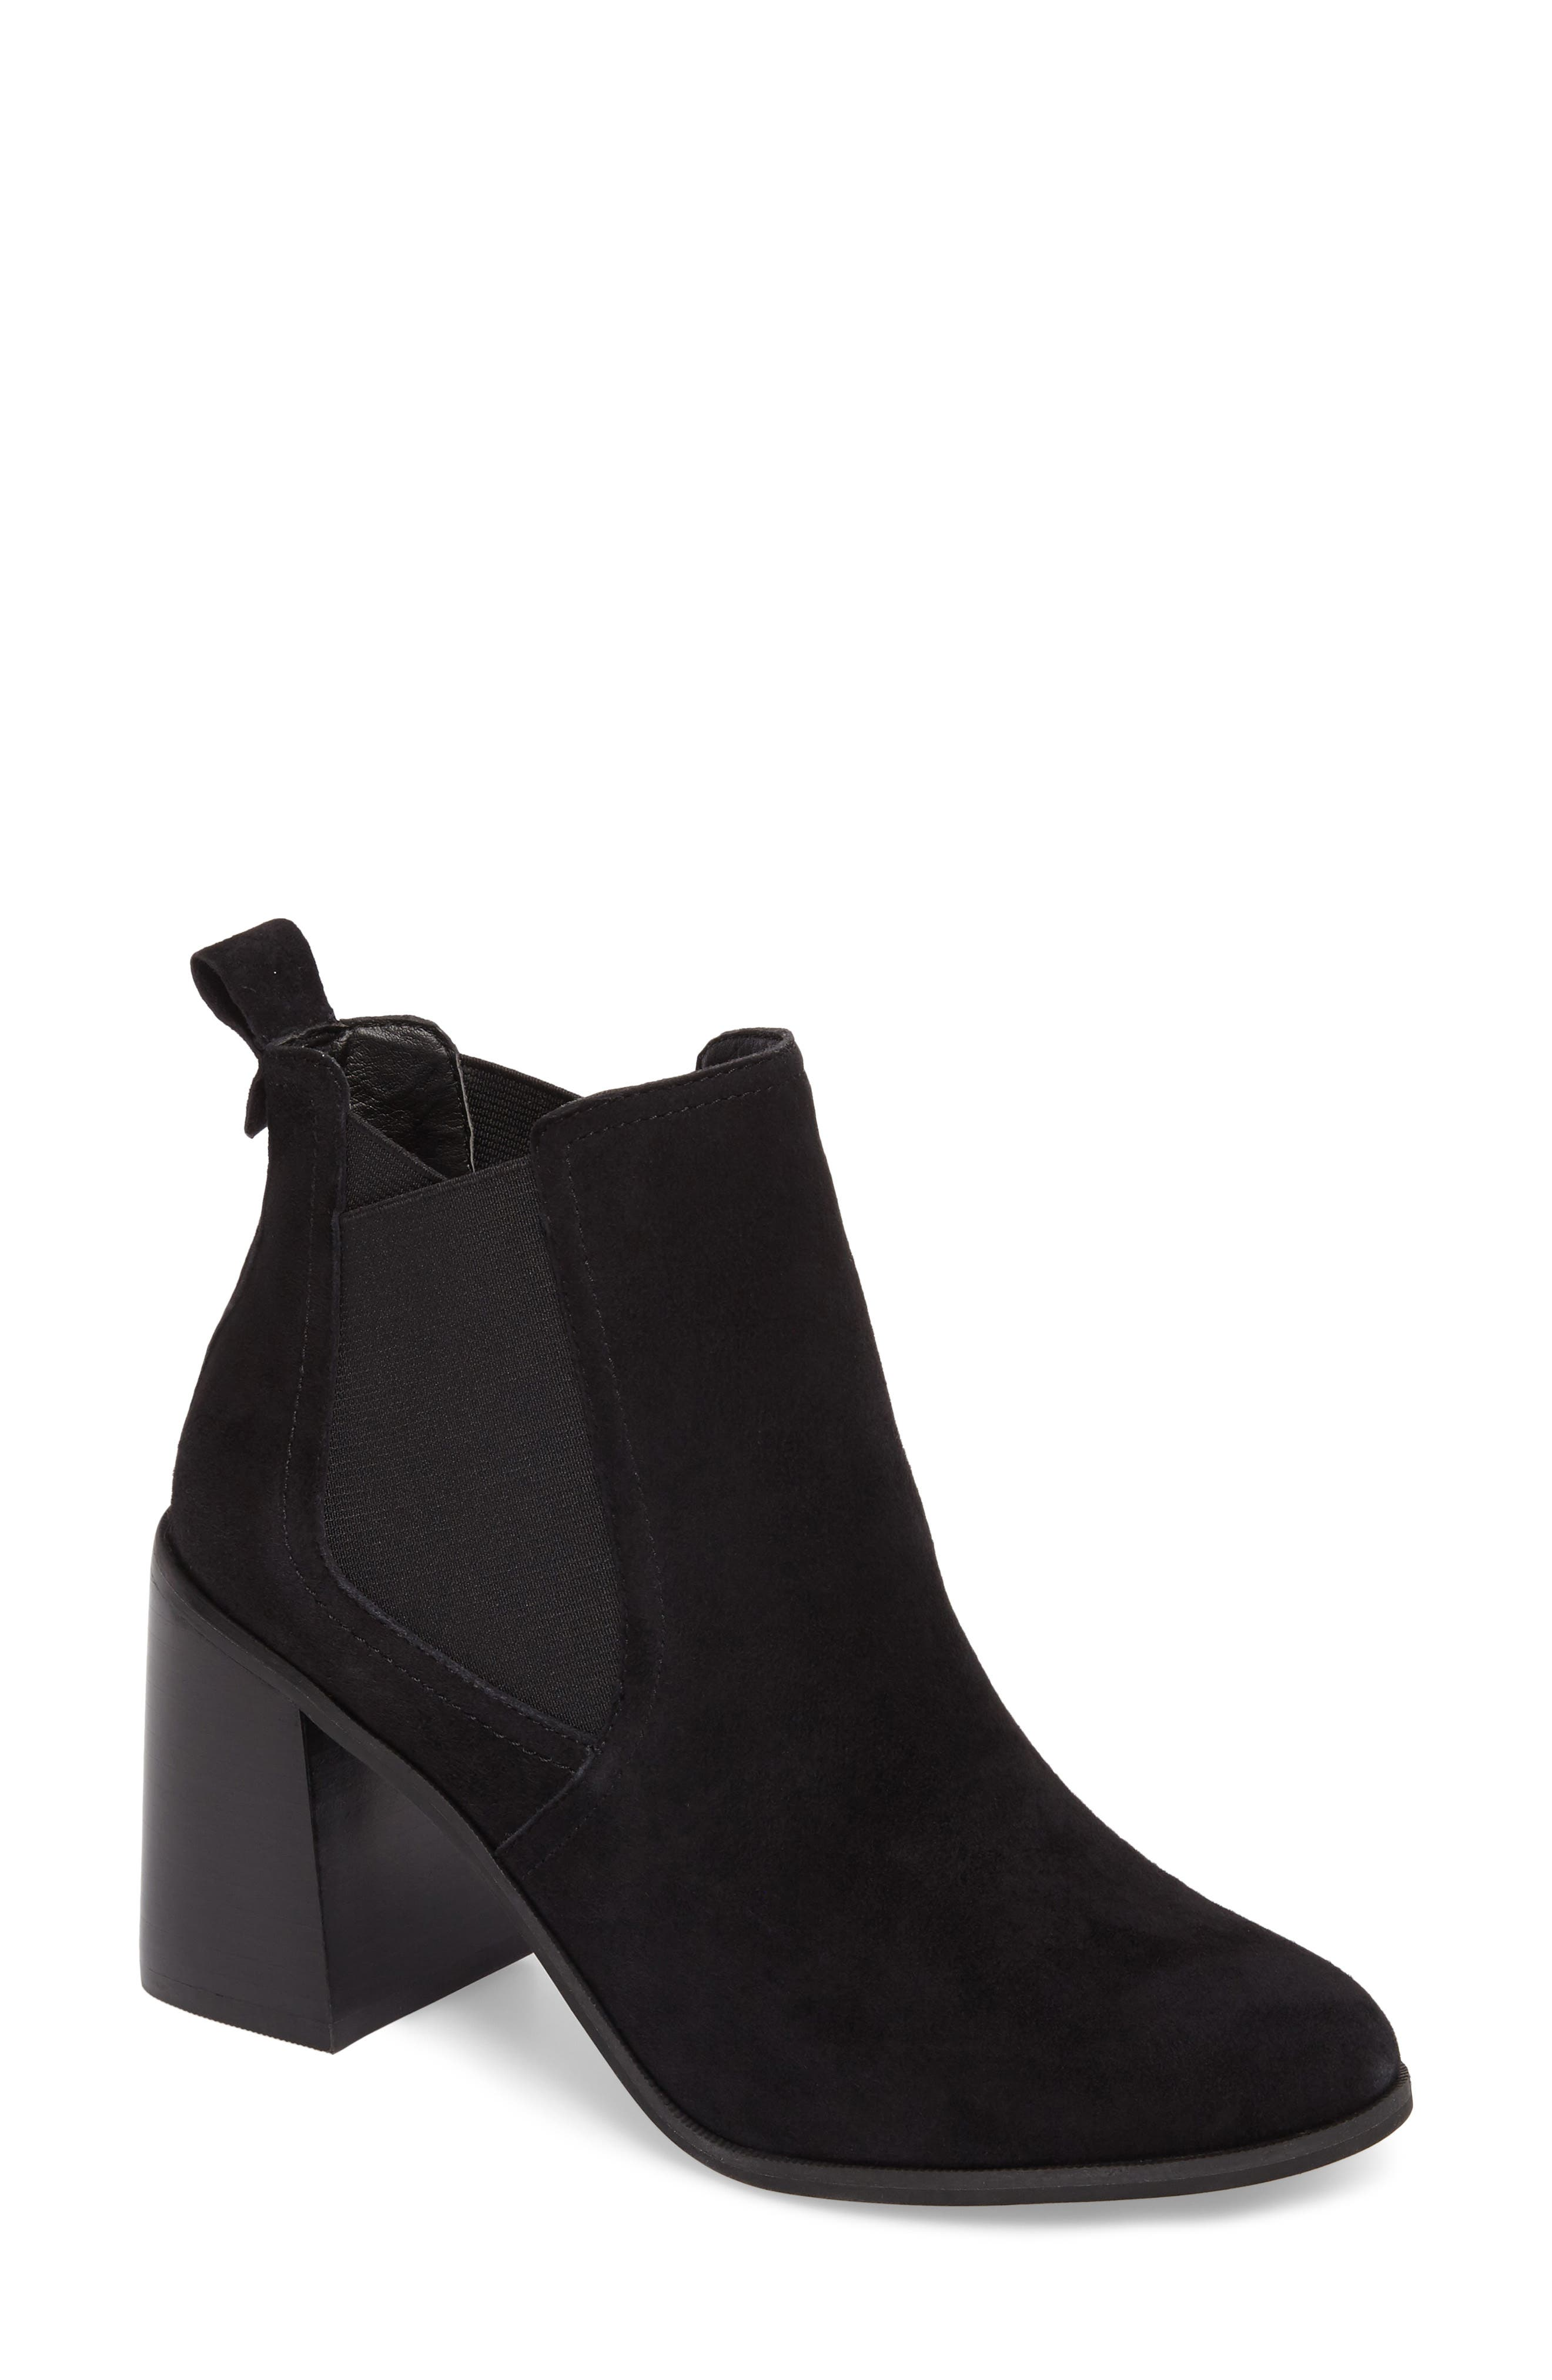 Quinn Flared Heel Chelsea Bootie,                             Main thumbnail 1, color,                             Black Suede